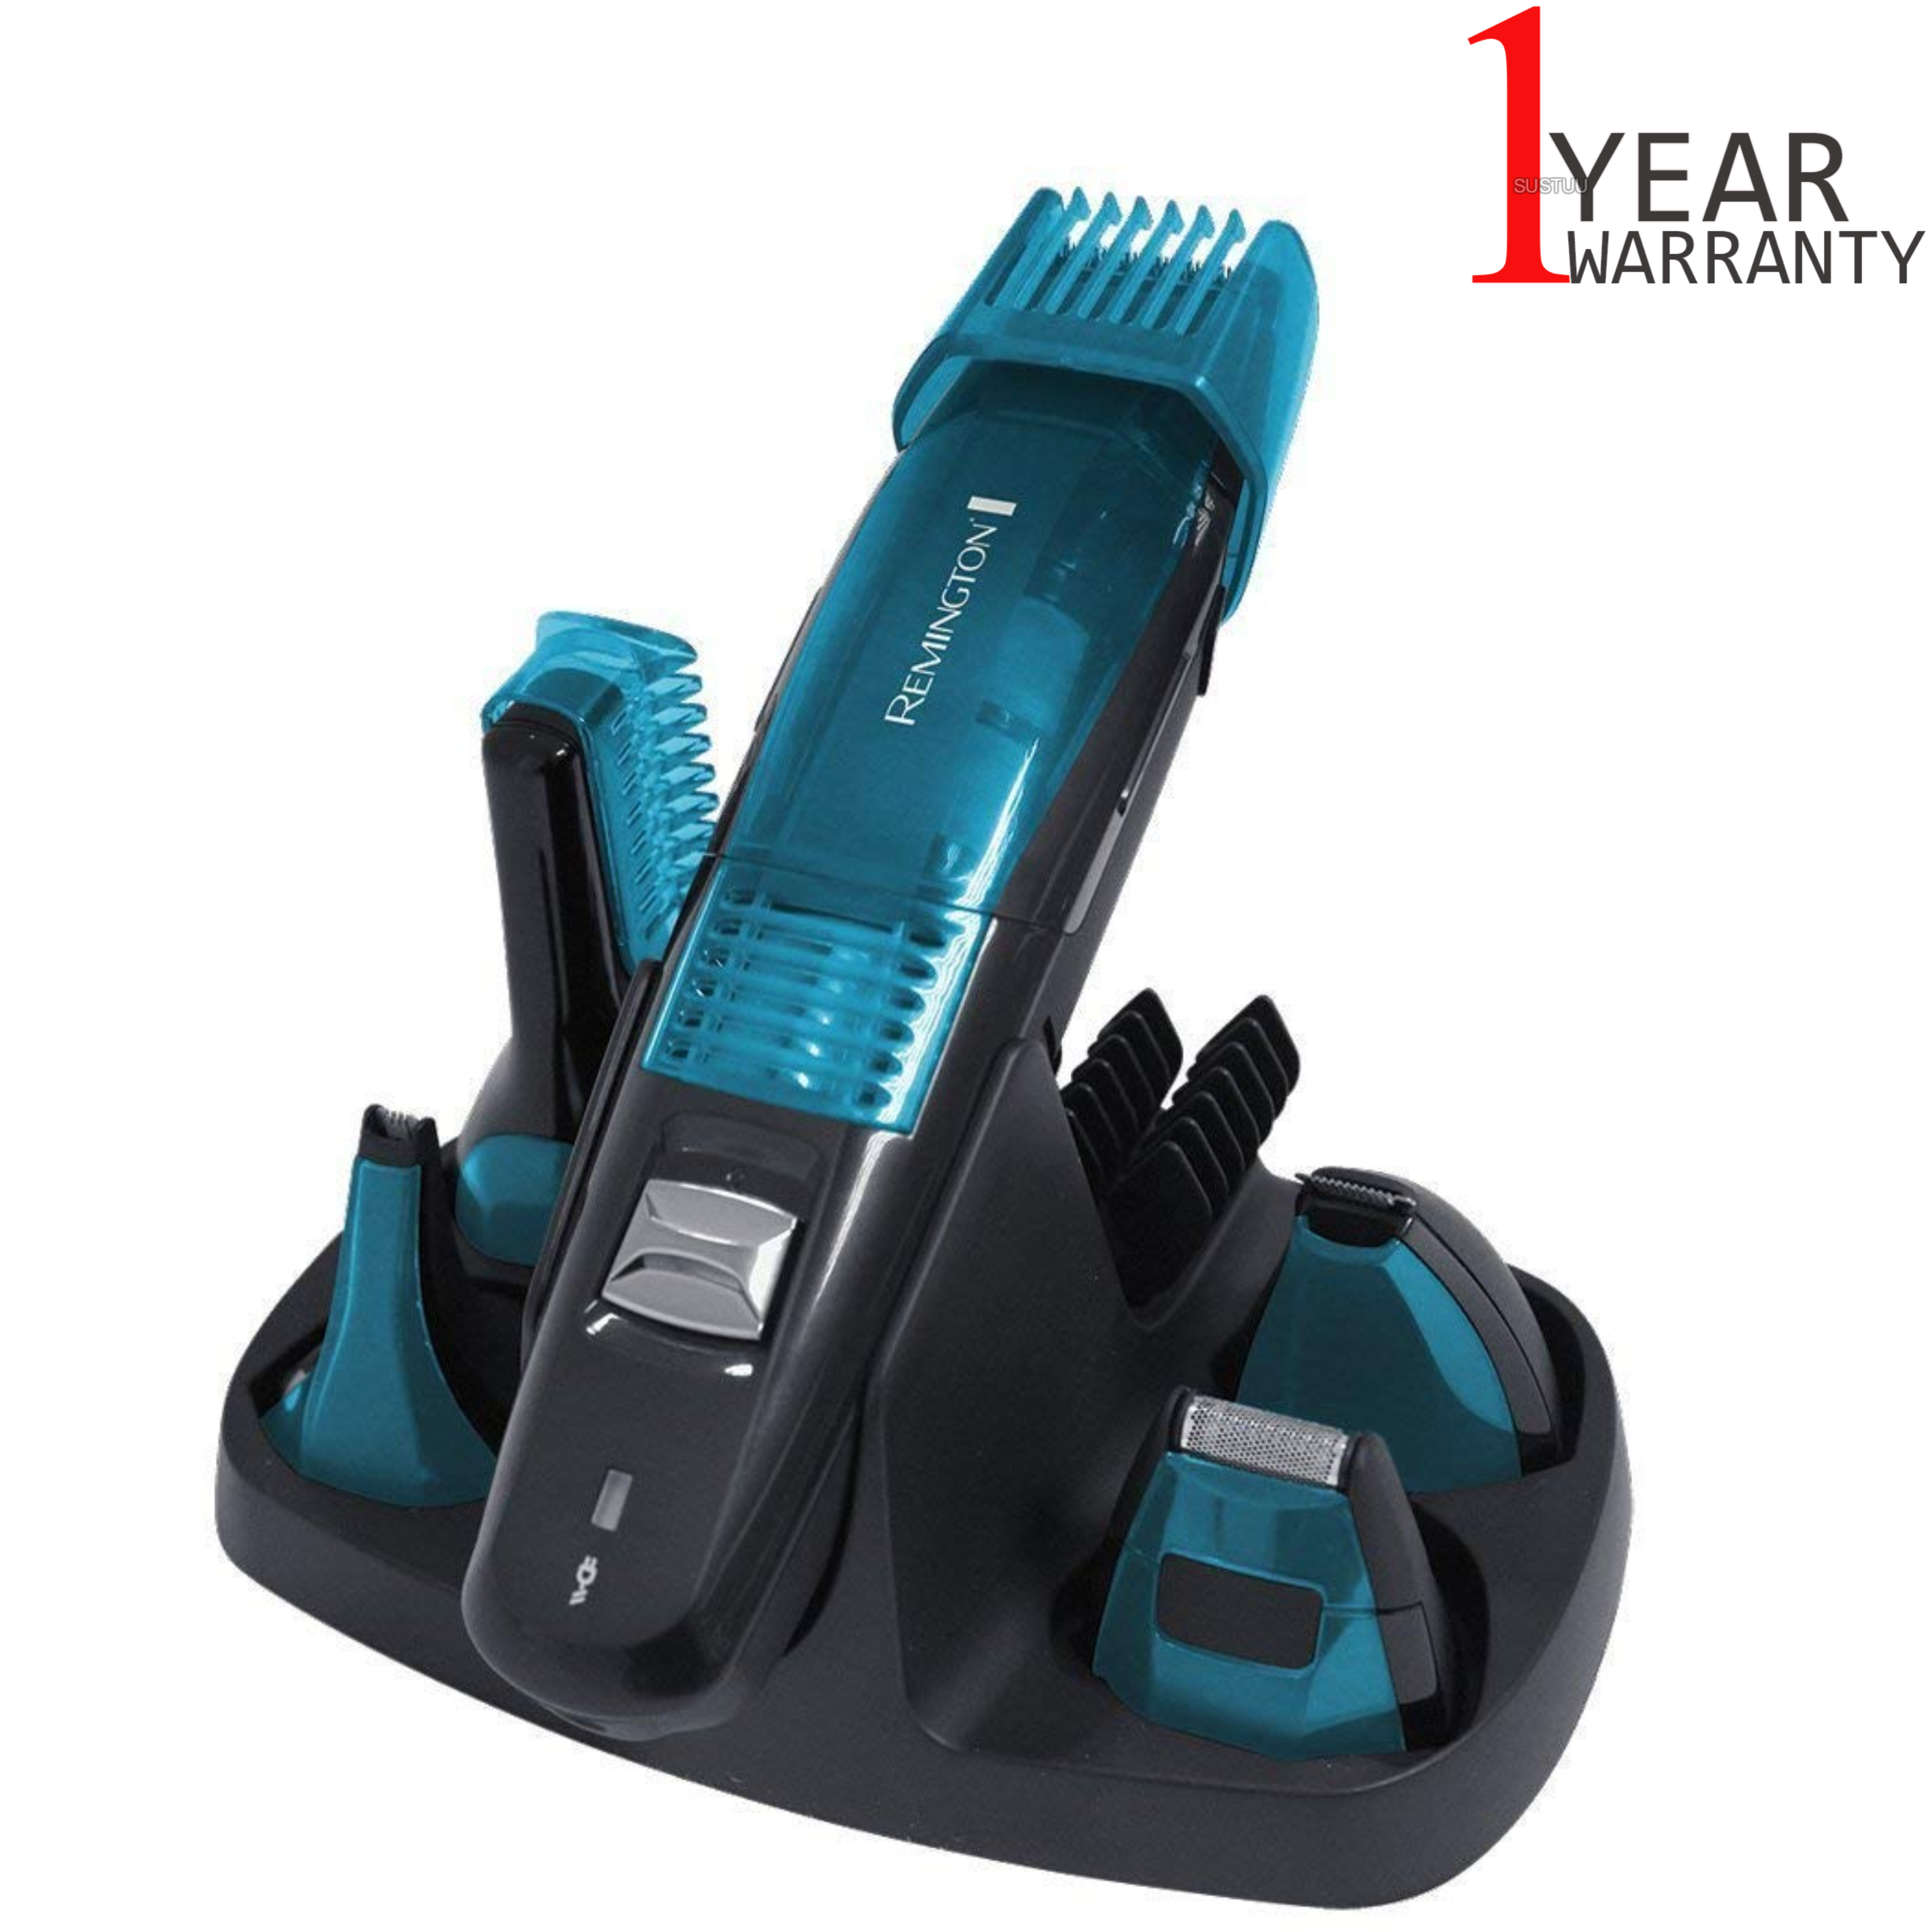 Remington PG6070 Vacuum Advanced 5-in-1 Grooming Kit | Body-Hair-Nose-Ear Trimmer